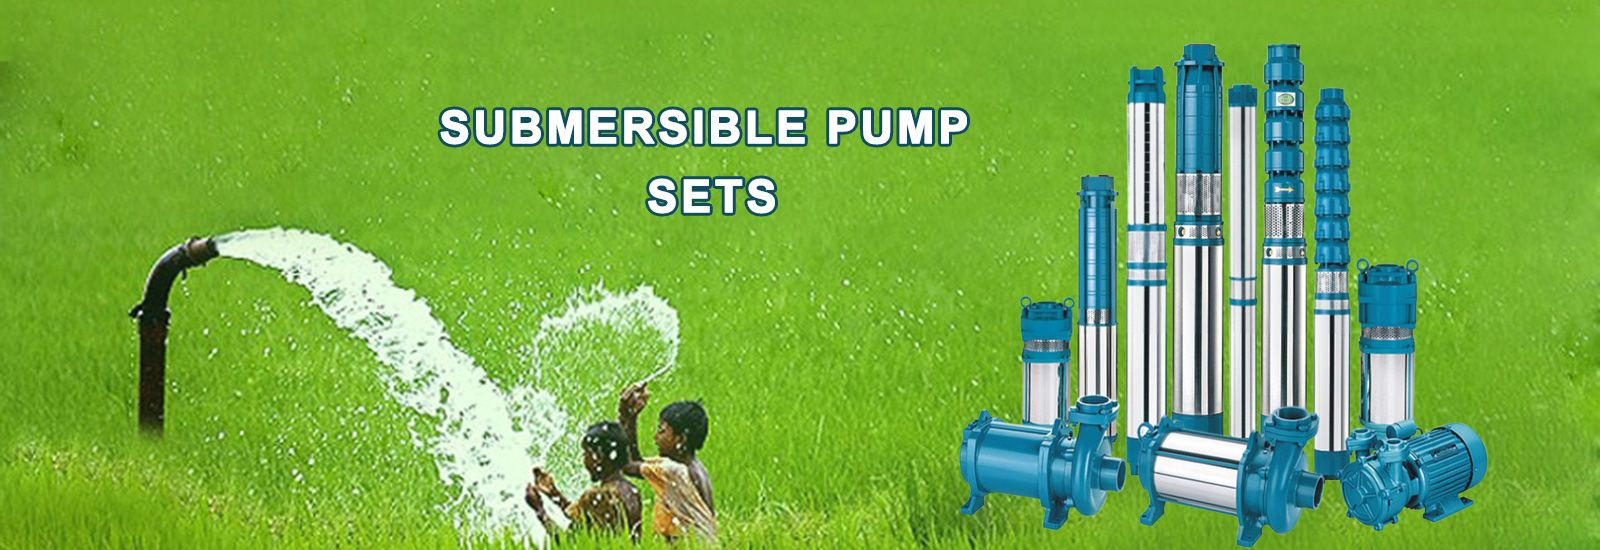 submersible pumps Manufacturer india